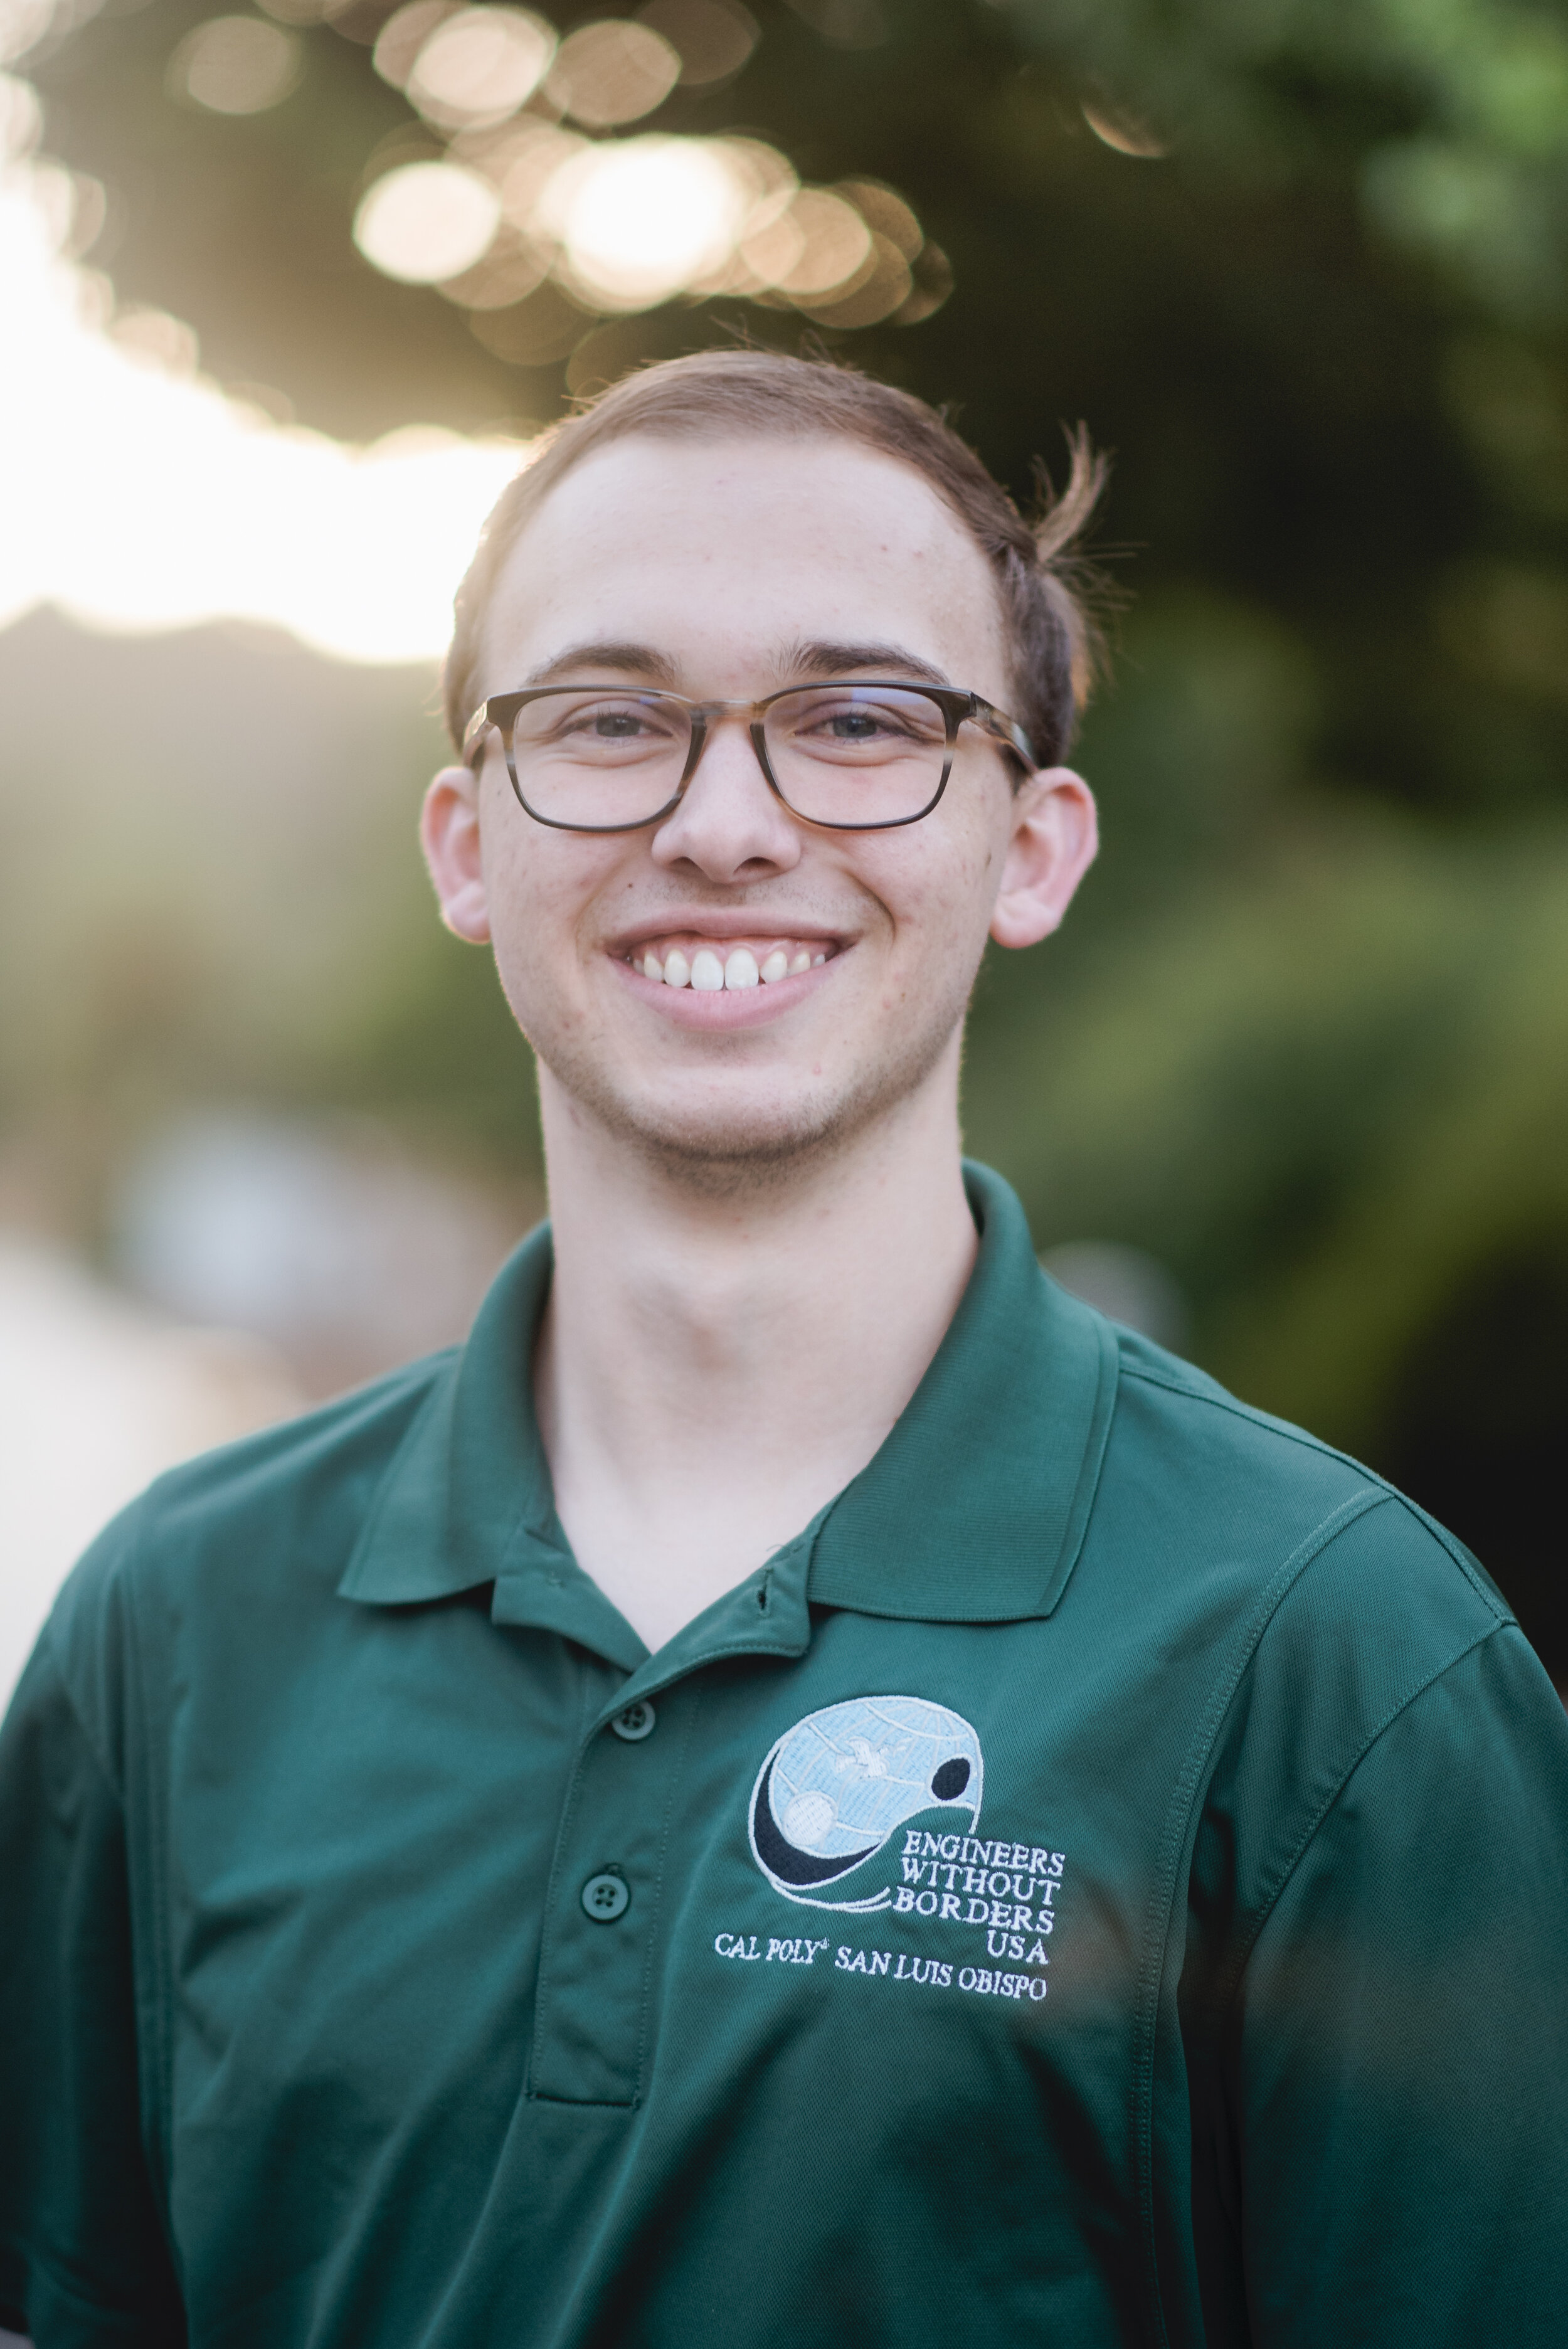 Austin Marshall - Fiji Team Project Manager    Grad 2021 - Mechanical Engineering   Austin is from Novato, CA (Just north of San Francisco). He joined Engineers Without Boarders because he has a passion for both helping people, whether it's in our community or around the world, and working to find new solutions to technical problems. Some of his favorite memories with EWB include the Fiji team fundraisers and club social events like the camping trip. Outside of EWB, Austin enjoys photography, rock climbing, hiking, line dancing, and exploring new places.